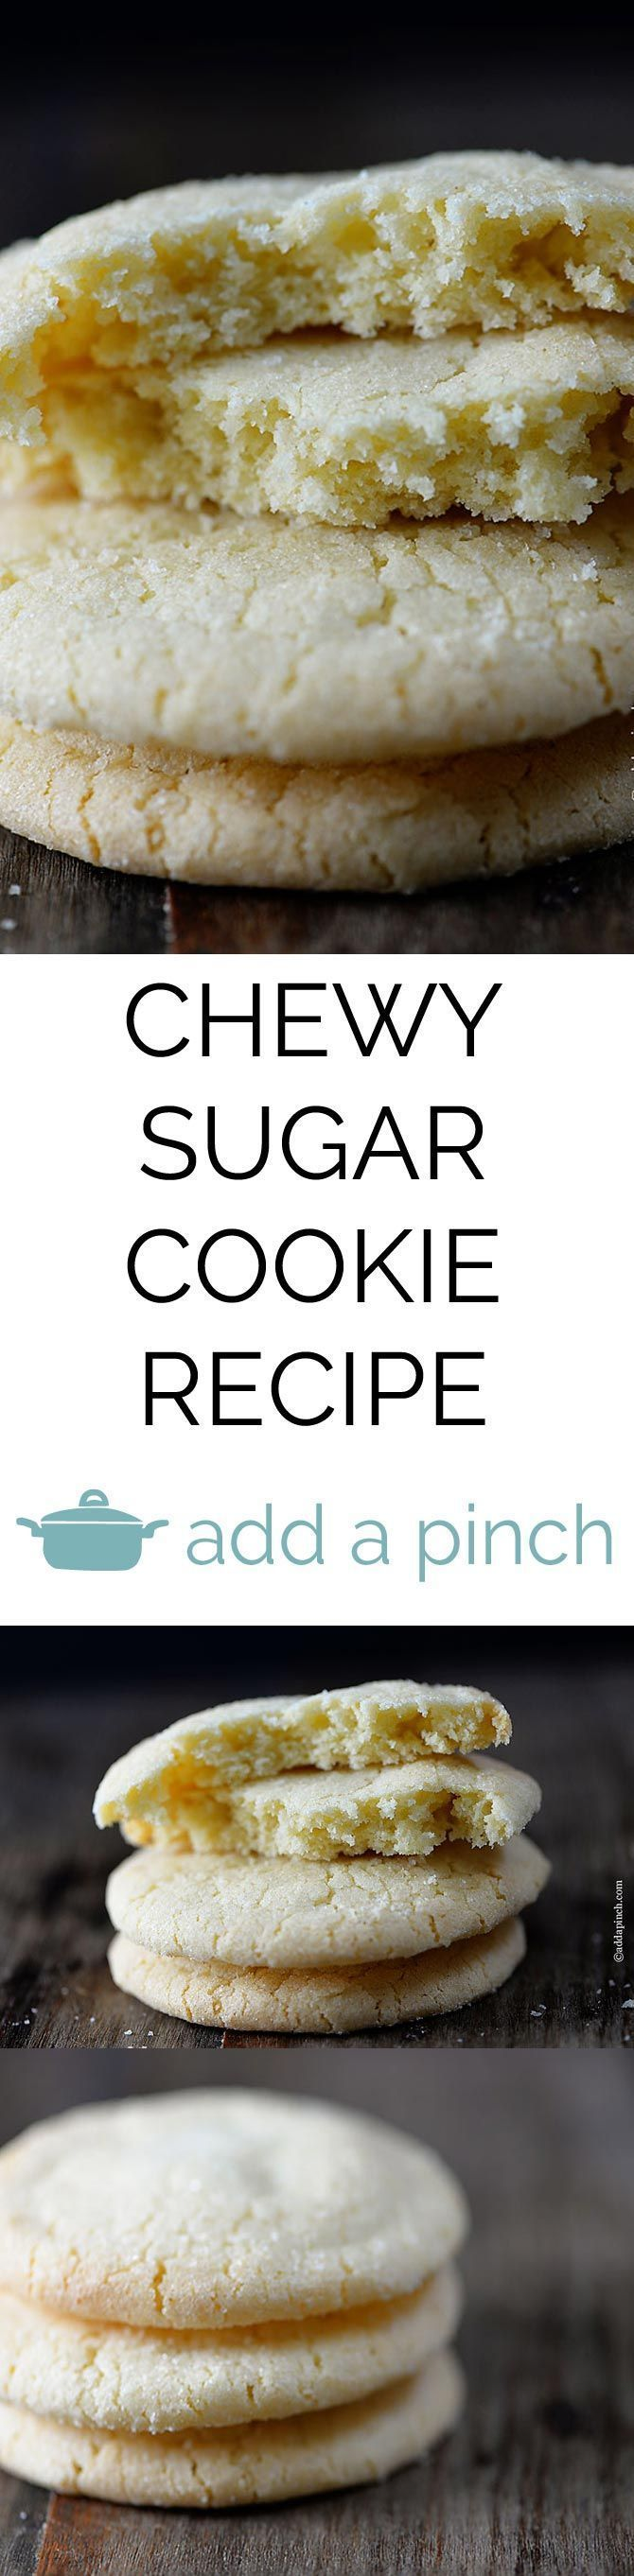 Sugar Cookie Recipe - These are my favorite sugar cookies! They are simple to make for parties or for snacking and they have a great chewy texture!  from addapinch.com (Favorite Desserts Sugar)